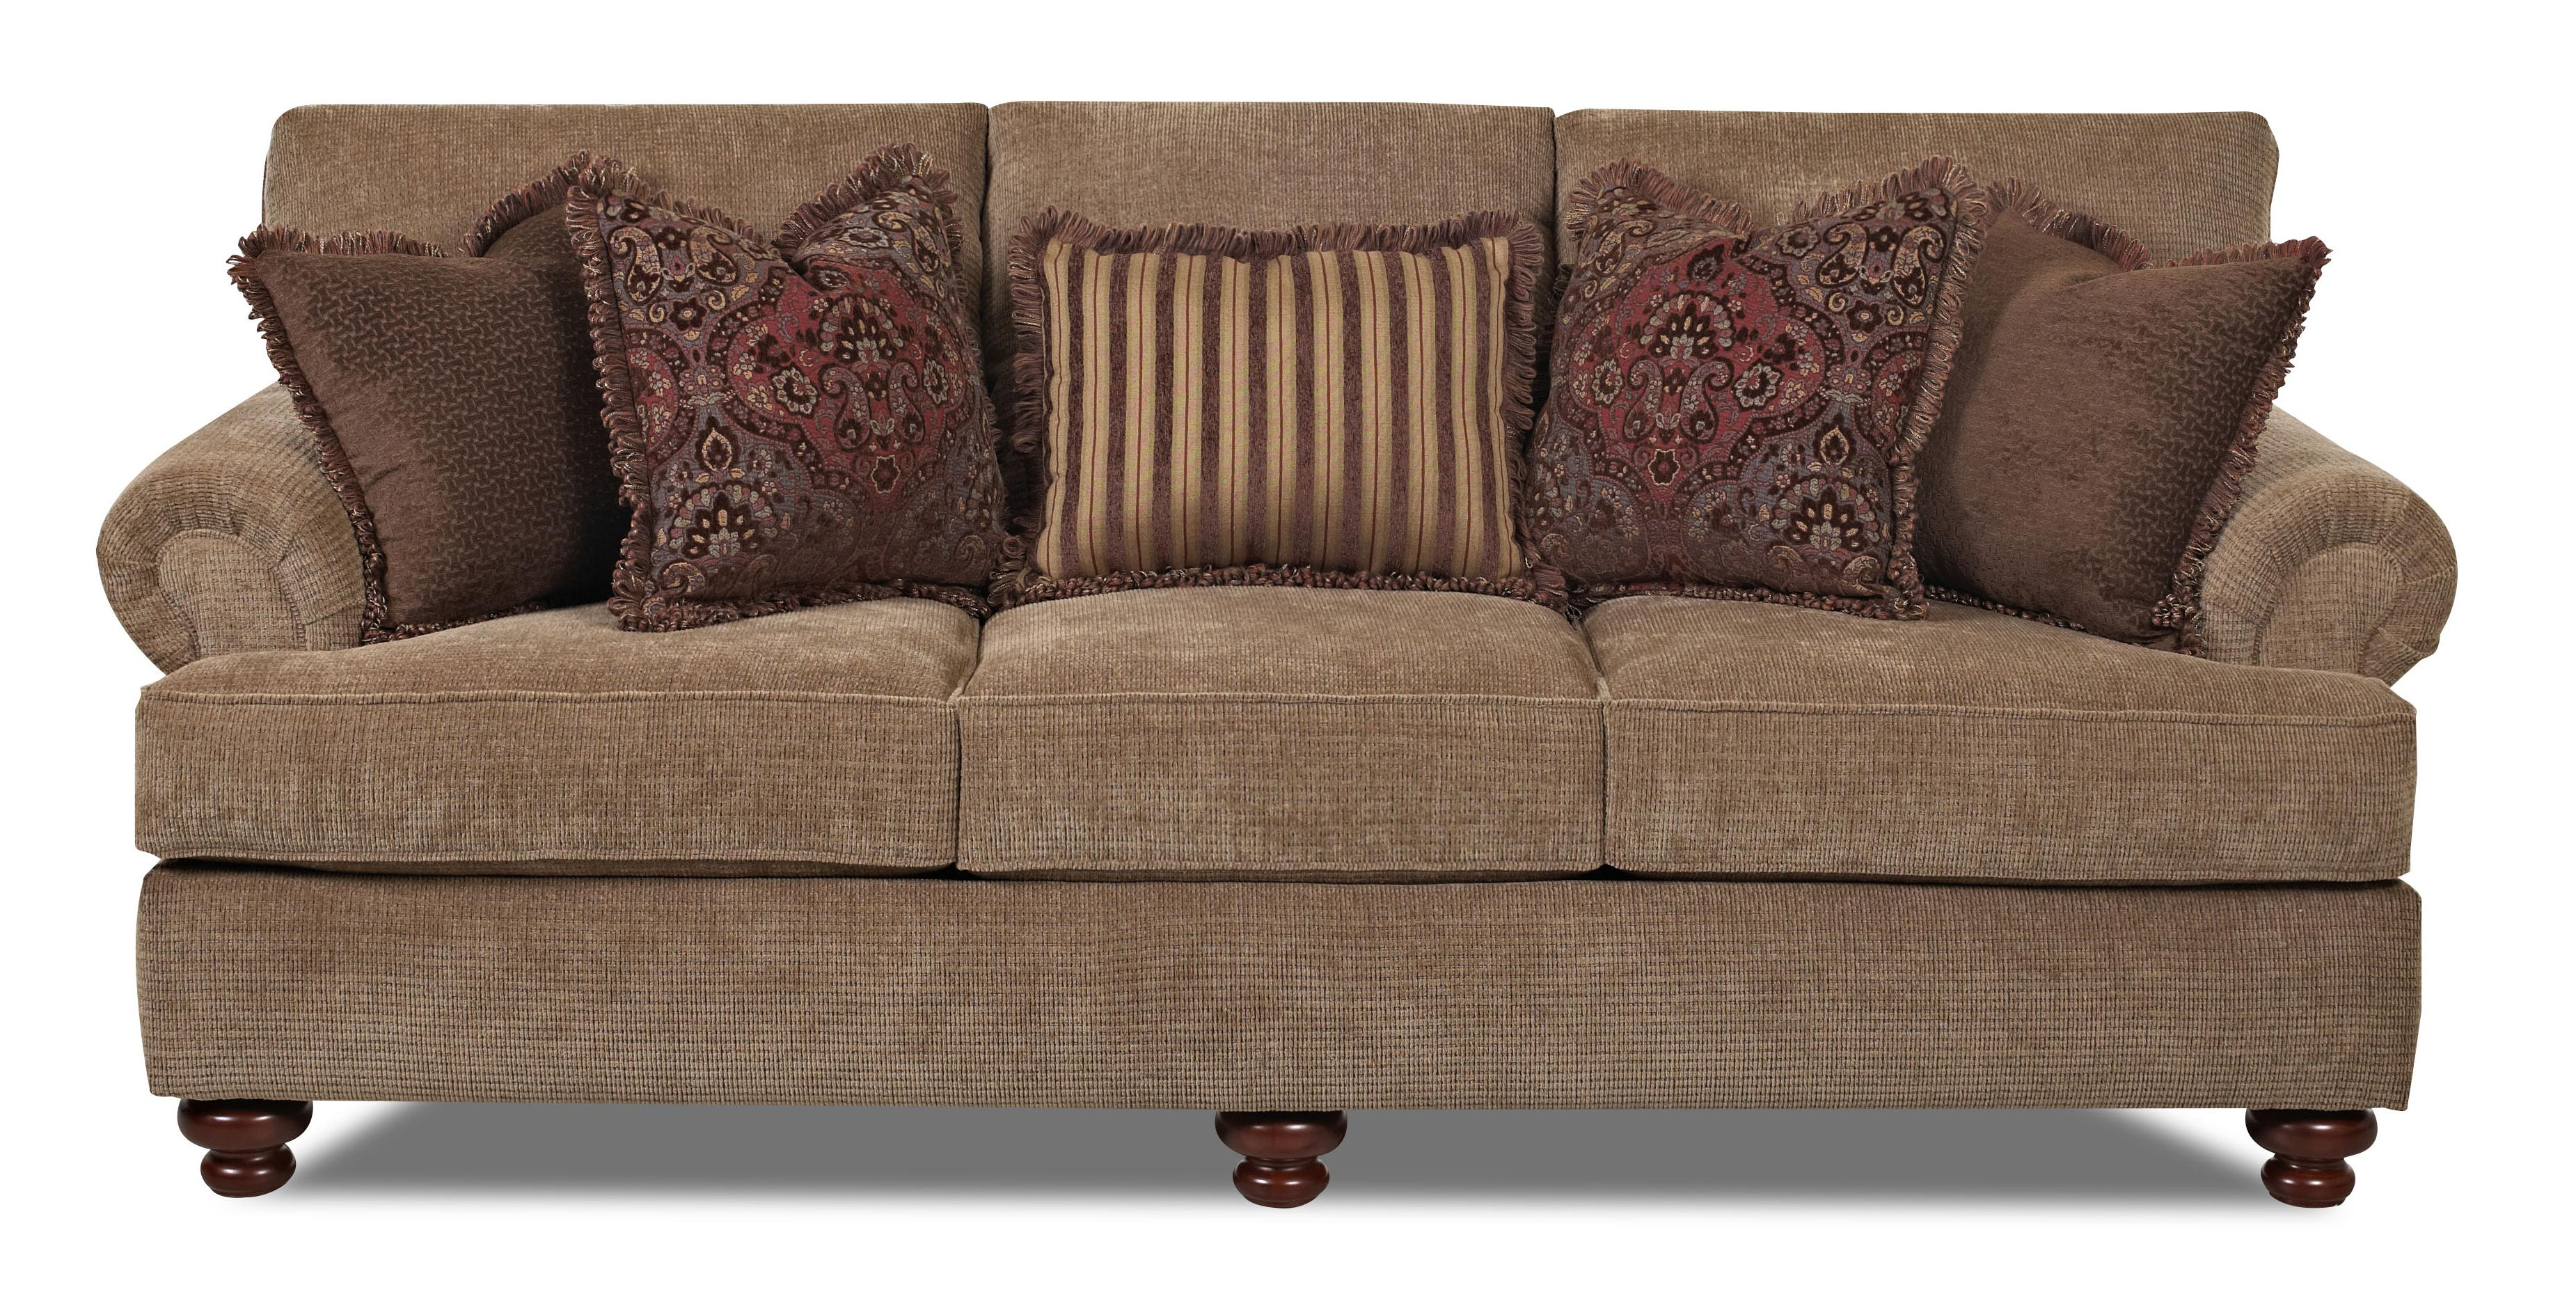 Klaussner Greenvale Traditional Stationary Sofa - Item Number: K73500 S